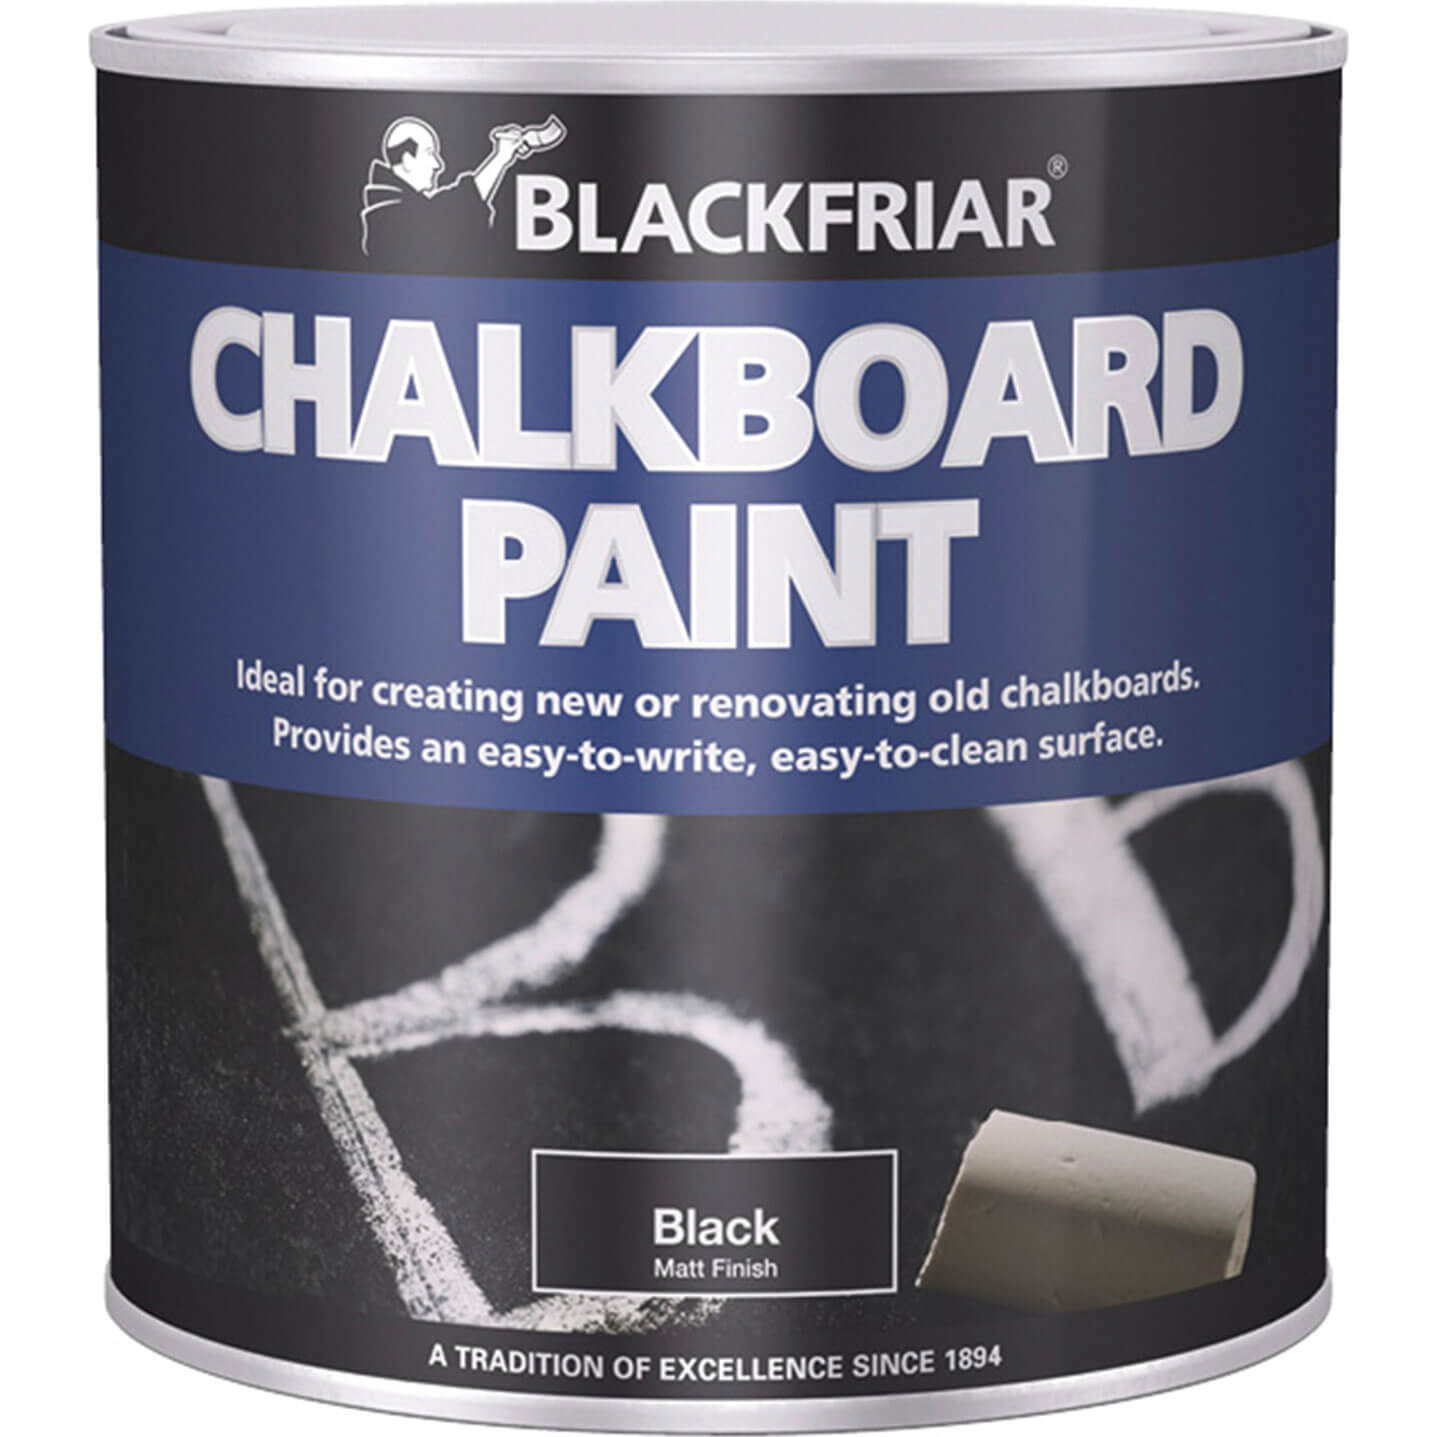 Image of Blackfriar Chalkboard Paint for Renovating or Creating Chalkboards Black 125ml